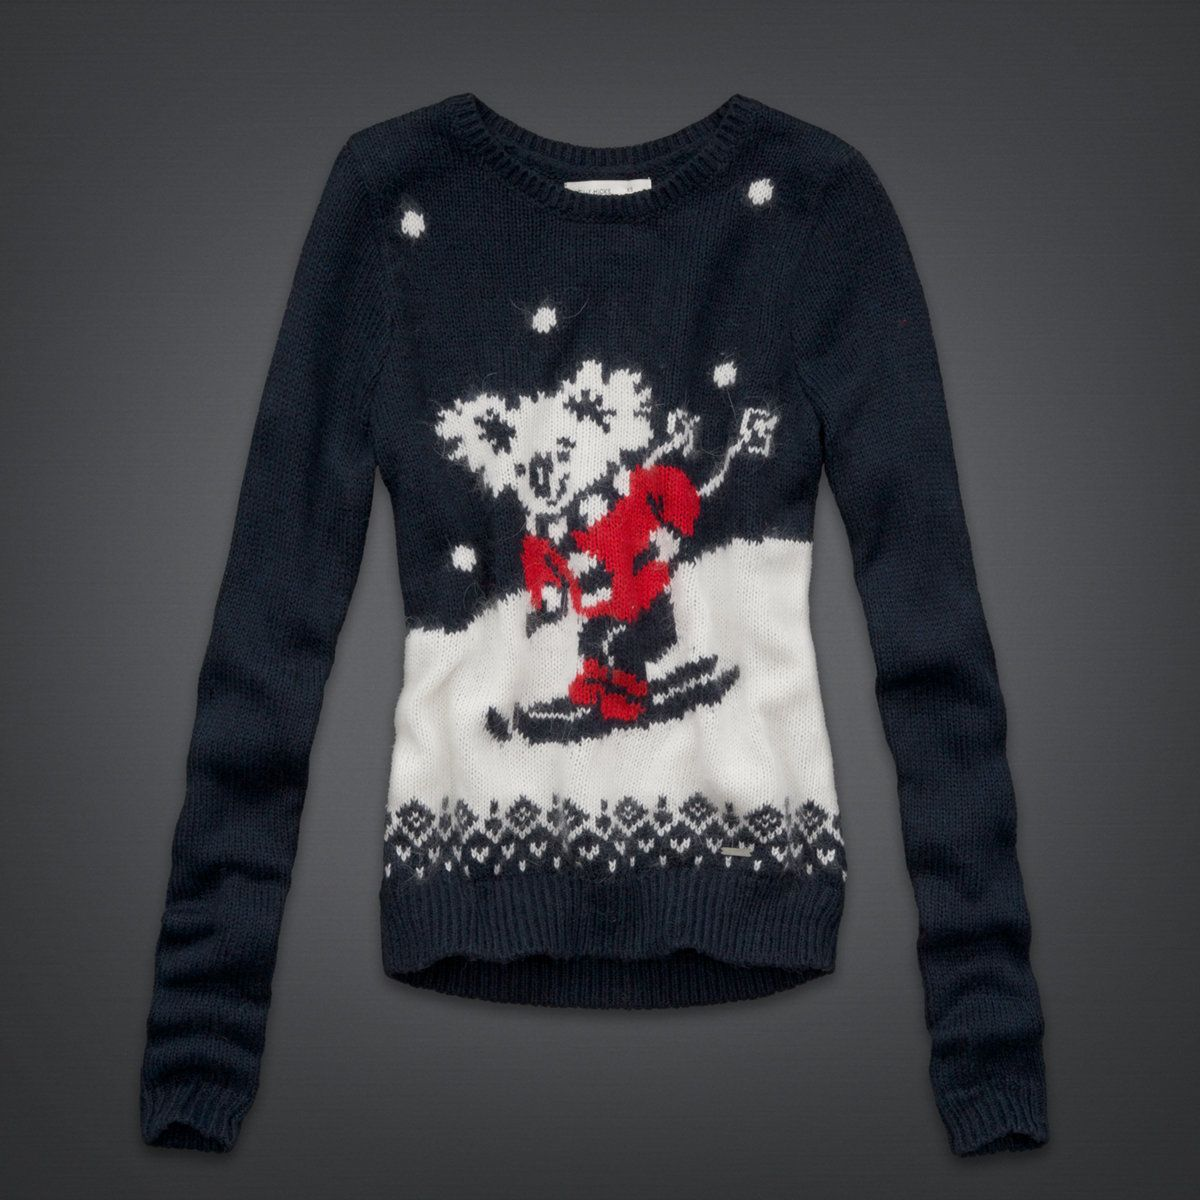 hollister christmas sweater